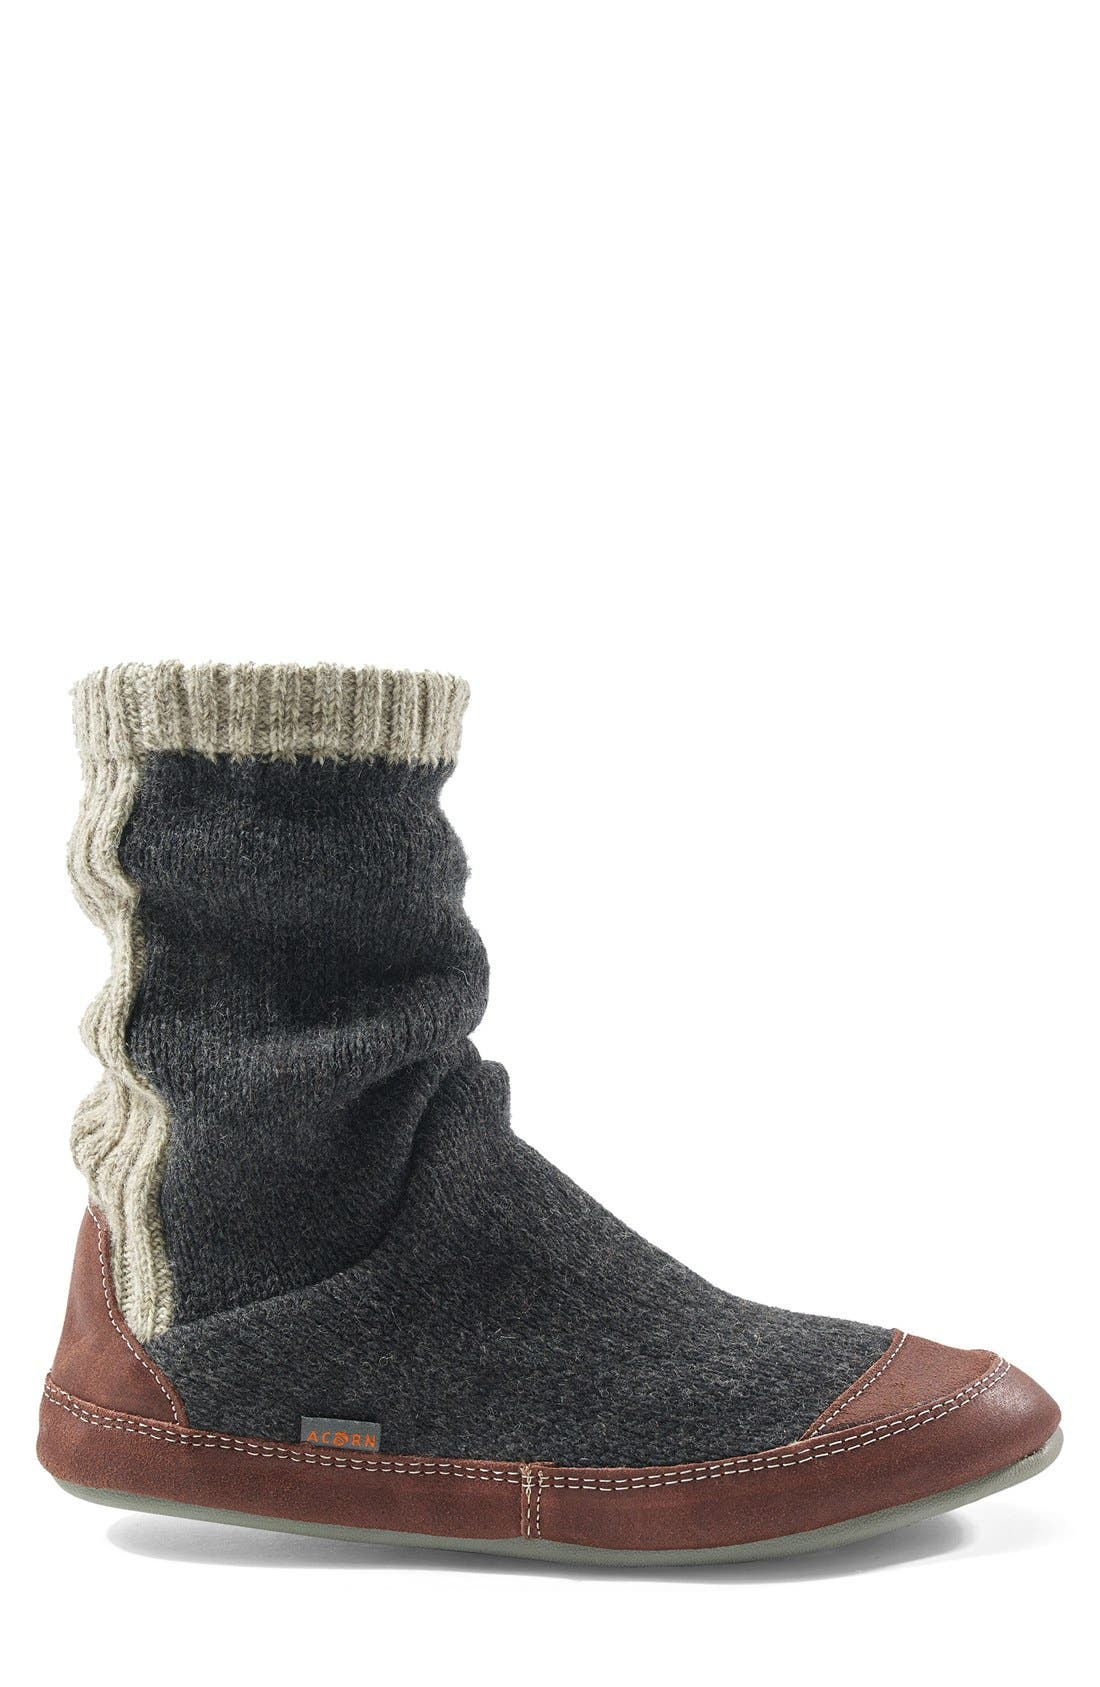 'Slouch Boot' Slipper,                             Alternate thumbnail 2, color,                             CHARCOAL RAGG WOOL